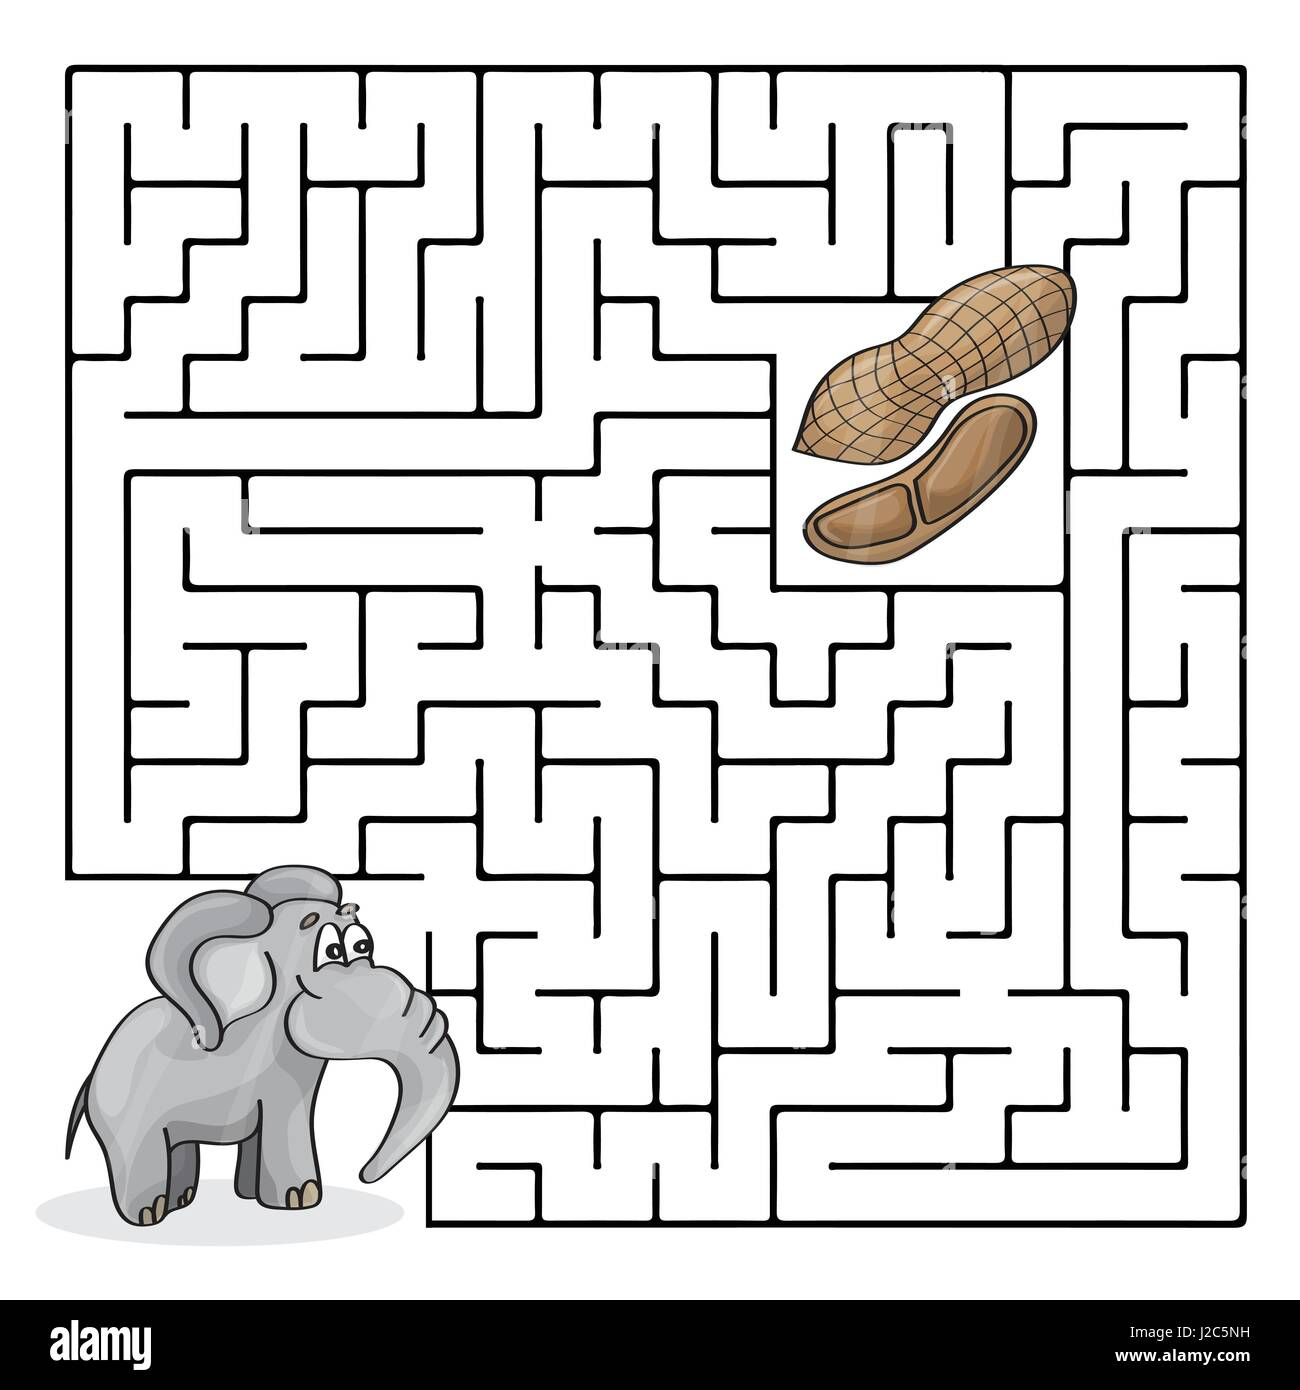 Education Maze Or Labyrinth Game For Children With Cute